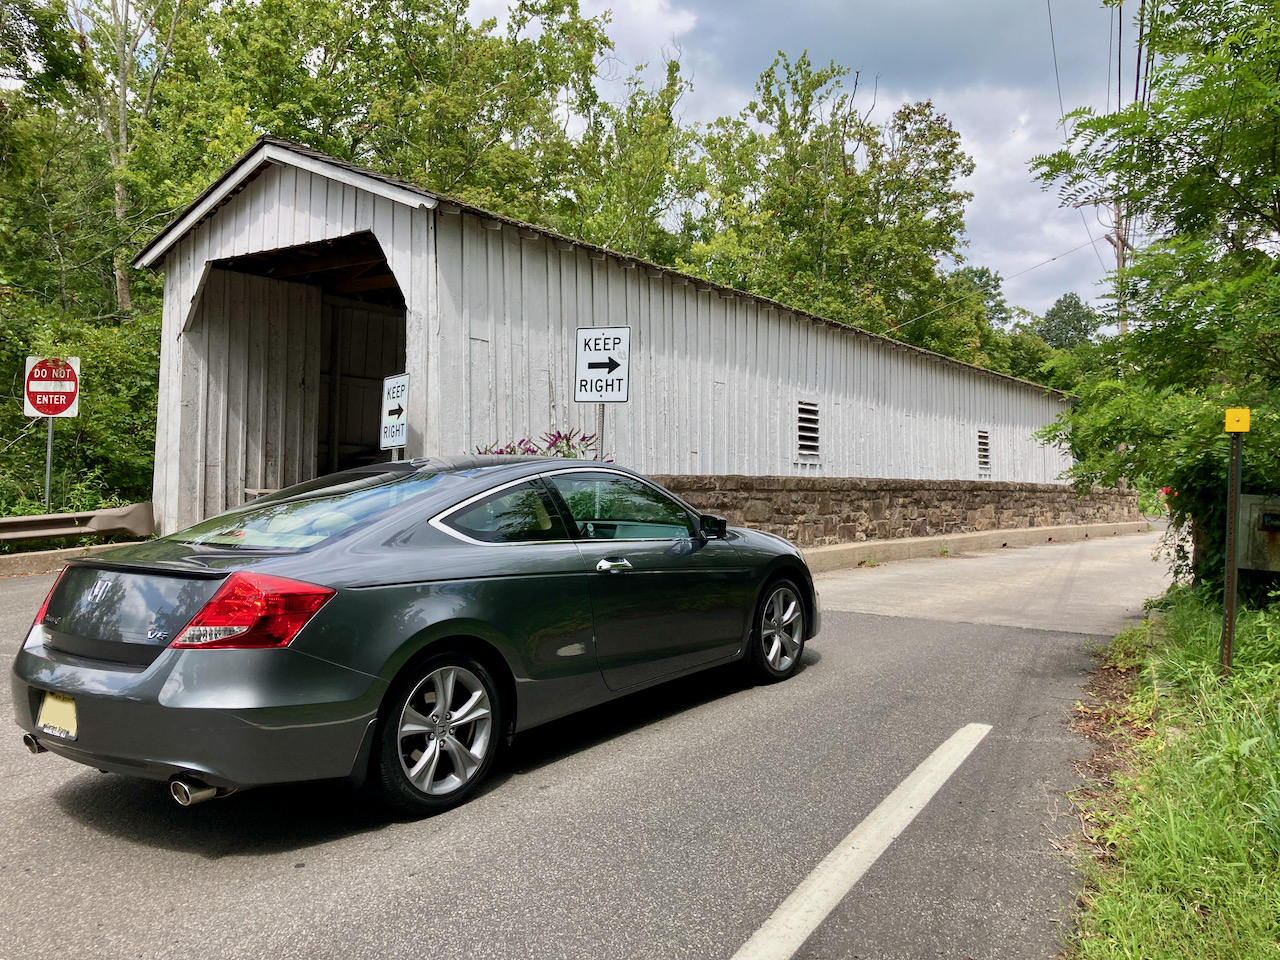 2012 Honda Accord coupe parked in front of Green Sergeant's Covered Bridge.